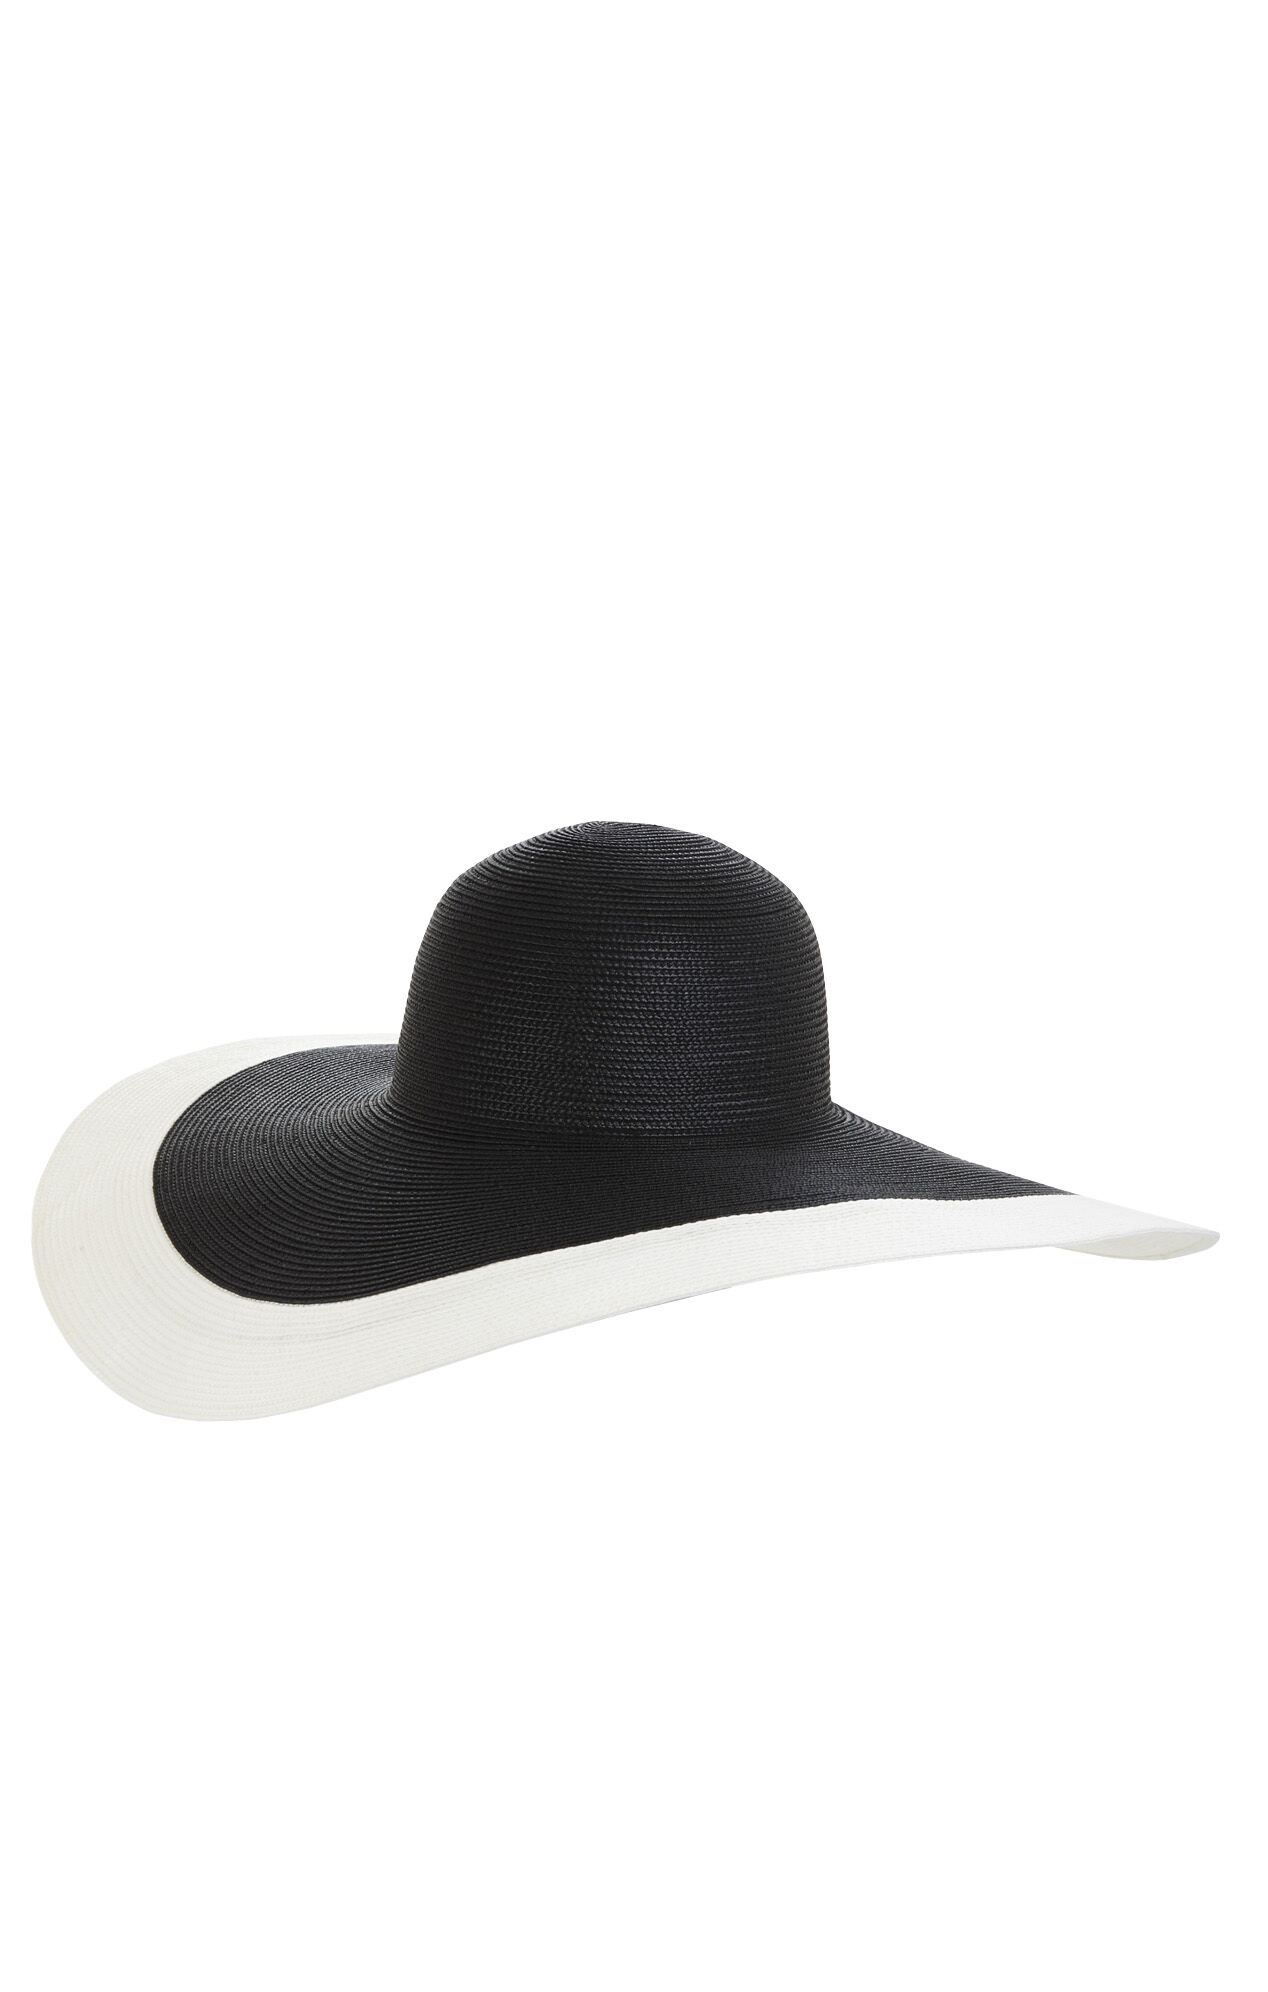 Two-Tone Floppy Hat